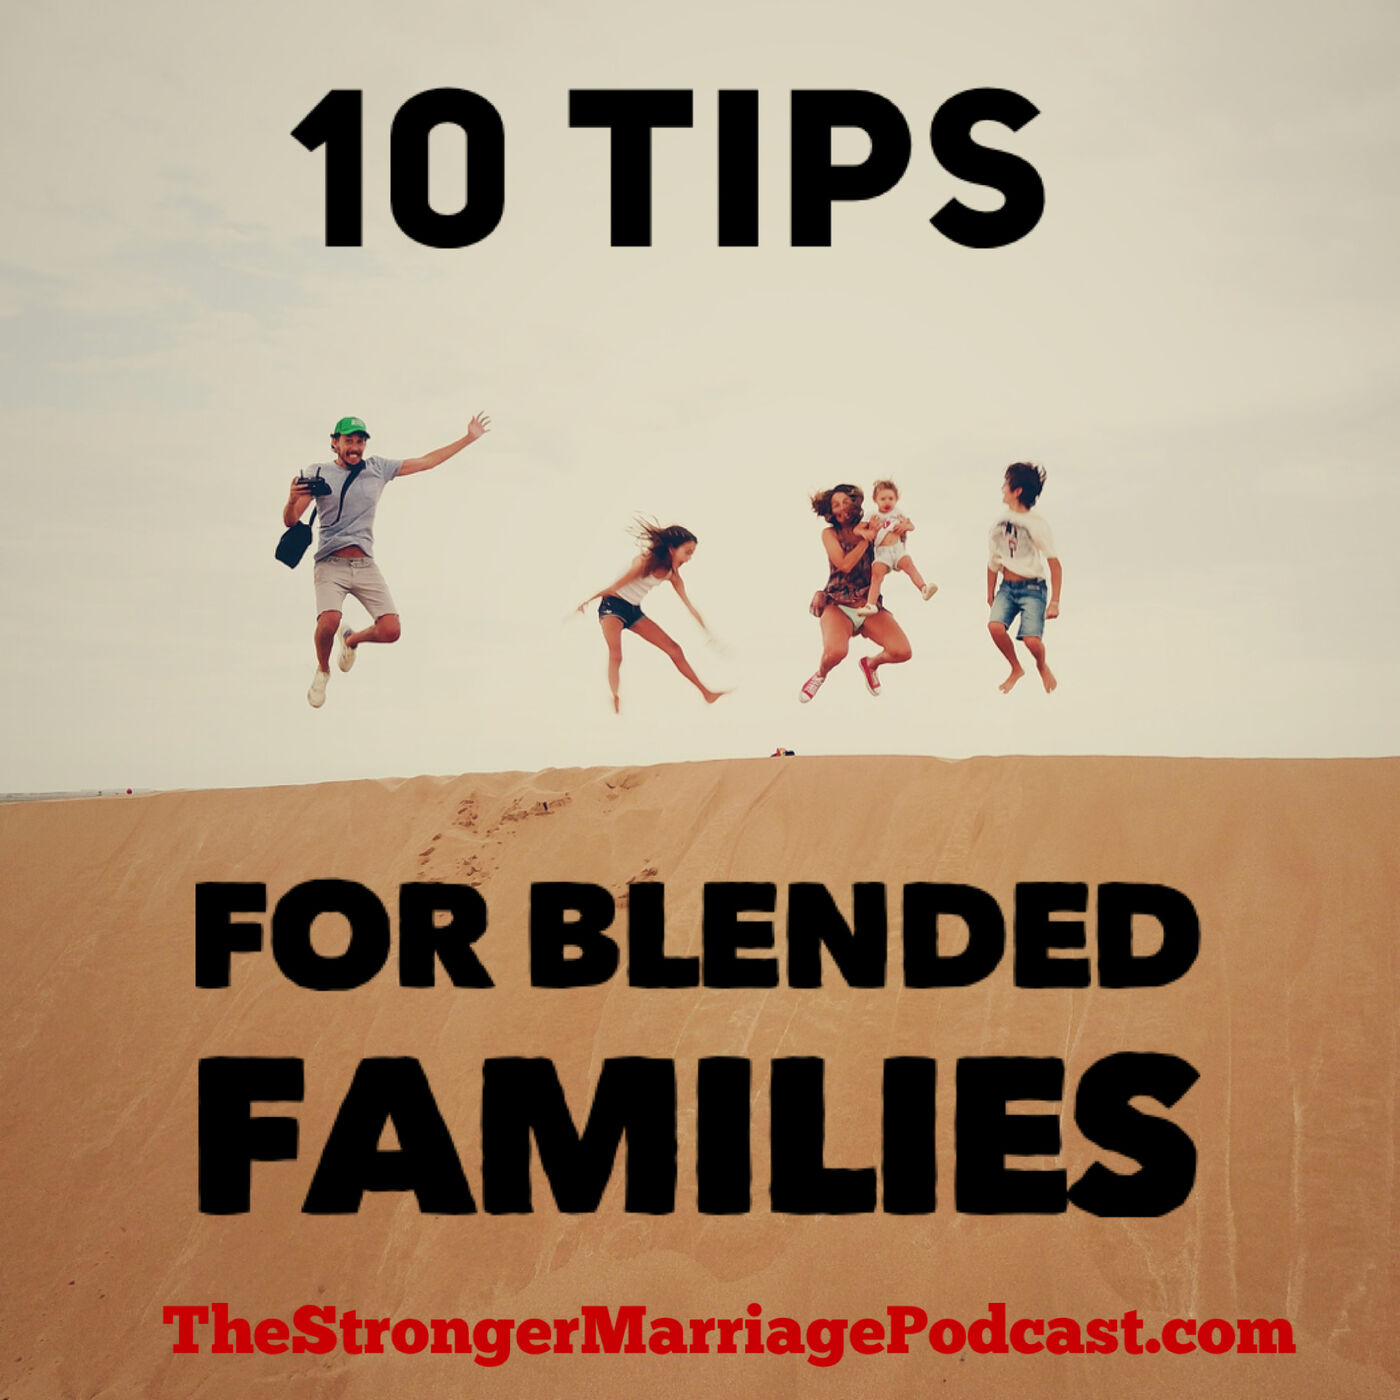 10 Tips for BLENDED FAMILIES